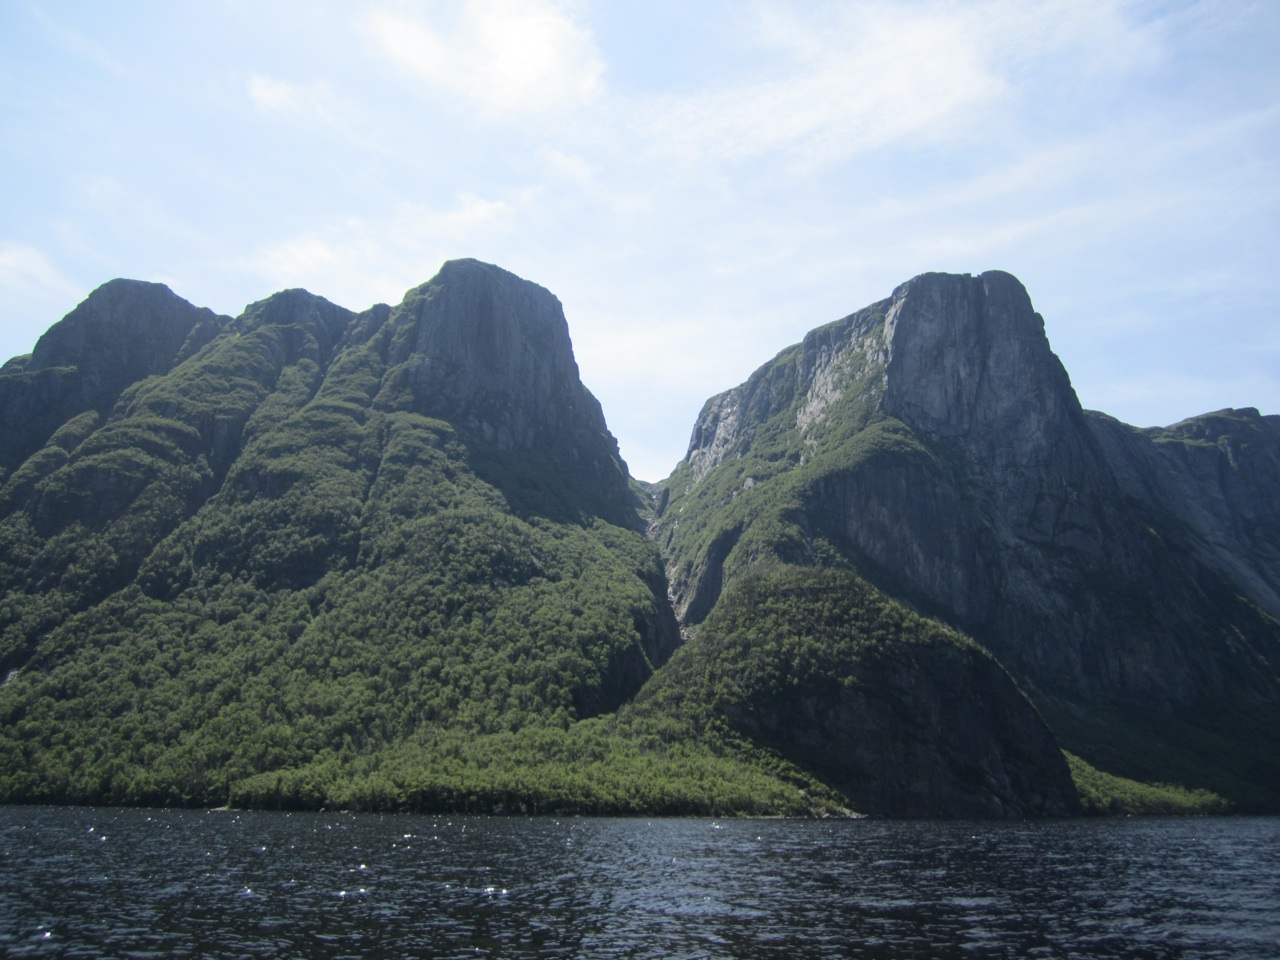 More Of The Mountains In The Fjord